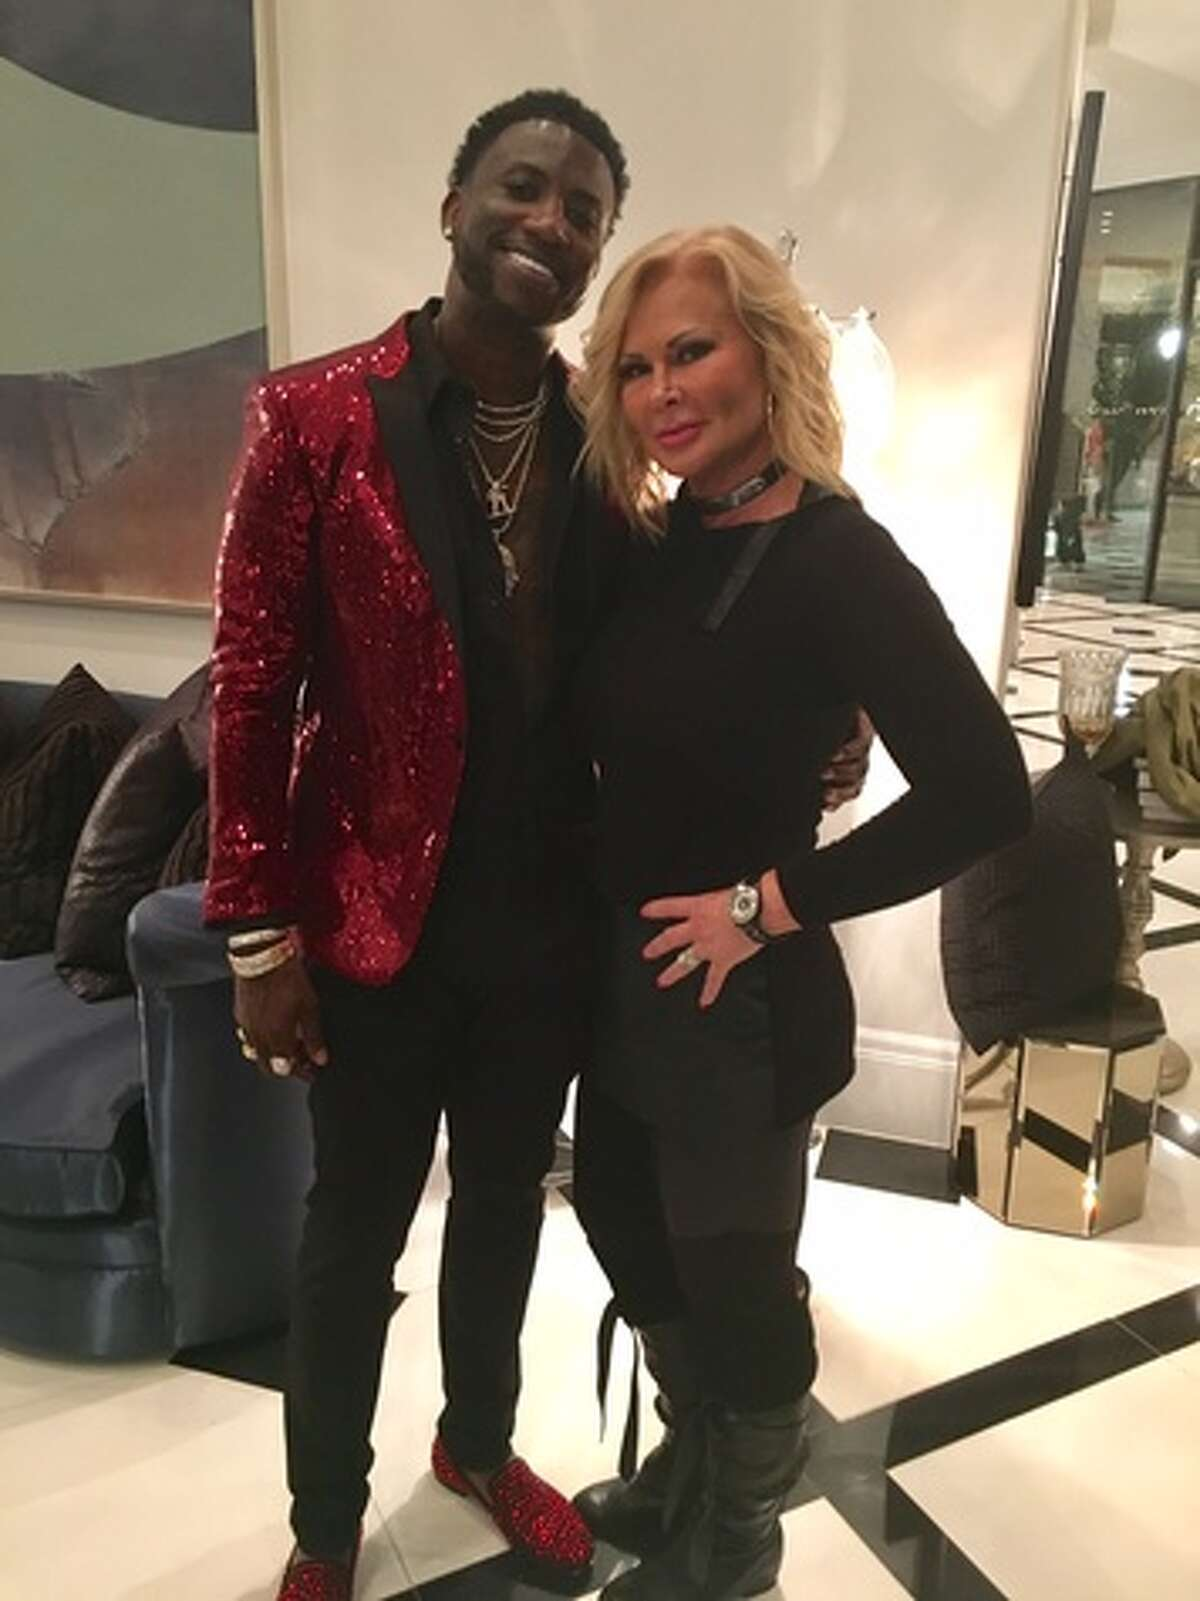 Homeowner Theresa Roemer poses with rapper Gucci Mane. >>Click to see her incredible mansion and its famous closet.